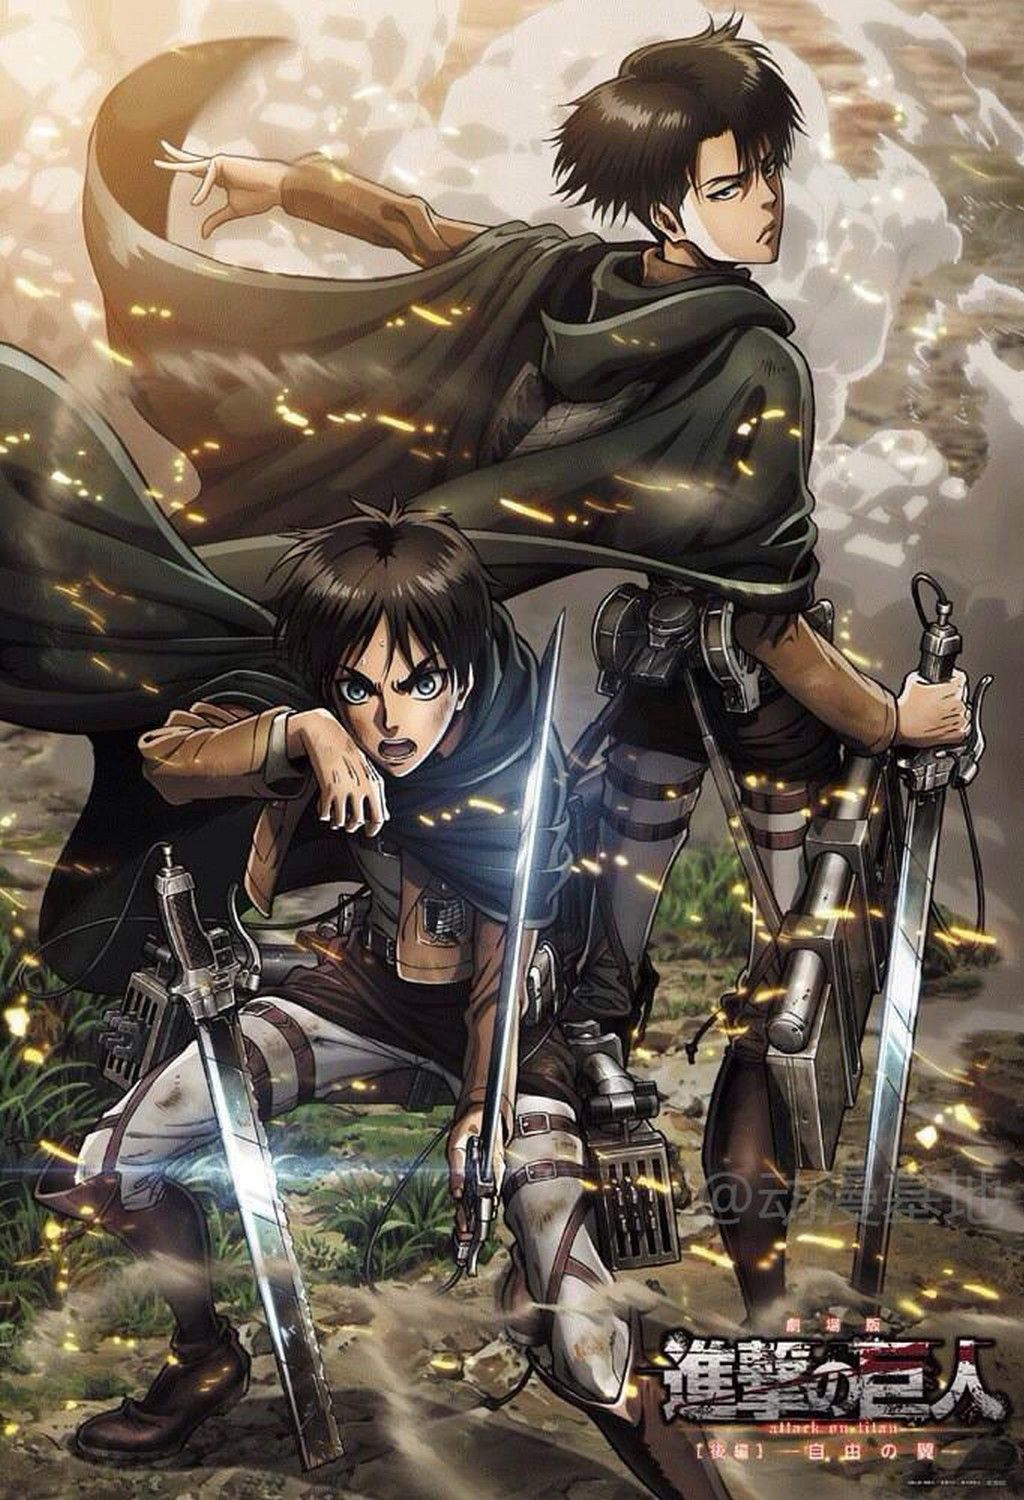 attack on titan part 2 wings of freedom - Google Search